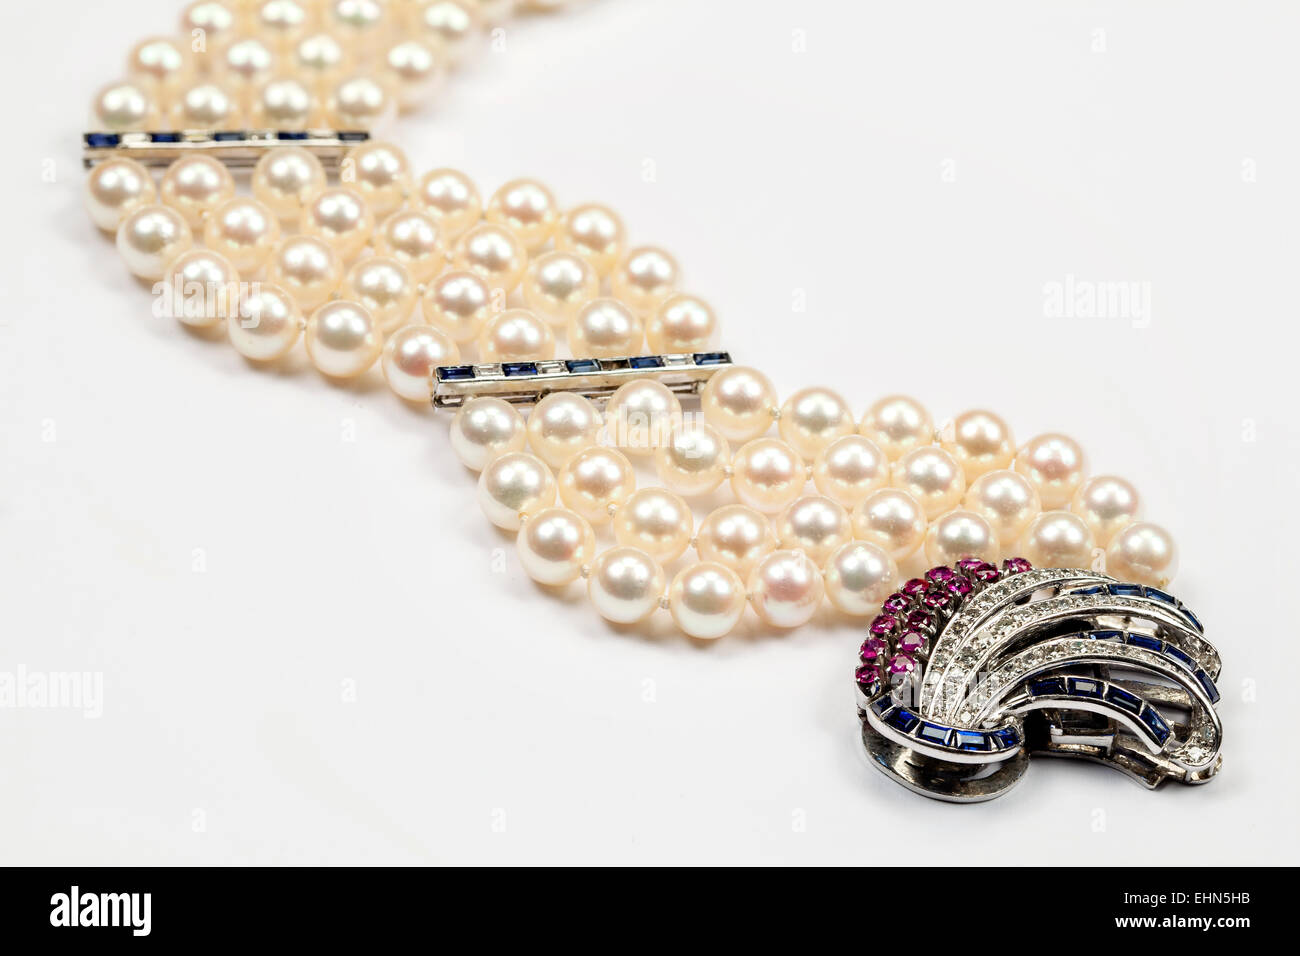 A Multistrand Pearl Bracelet With Diamond, Ruby And Sapphire Clasp